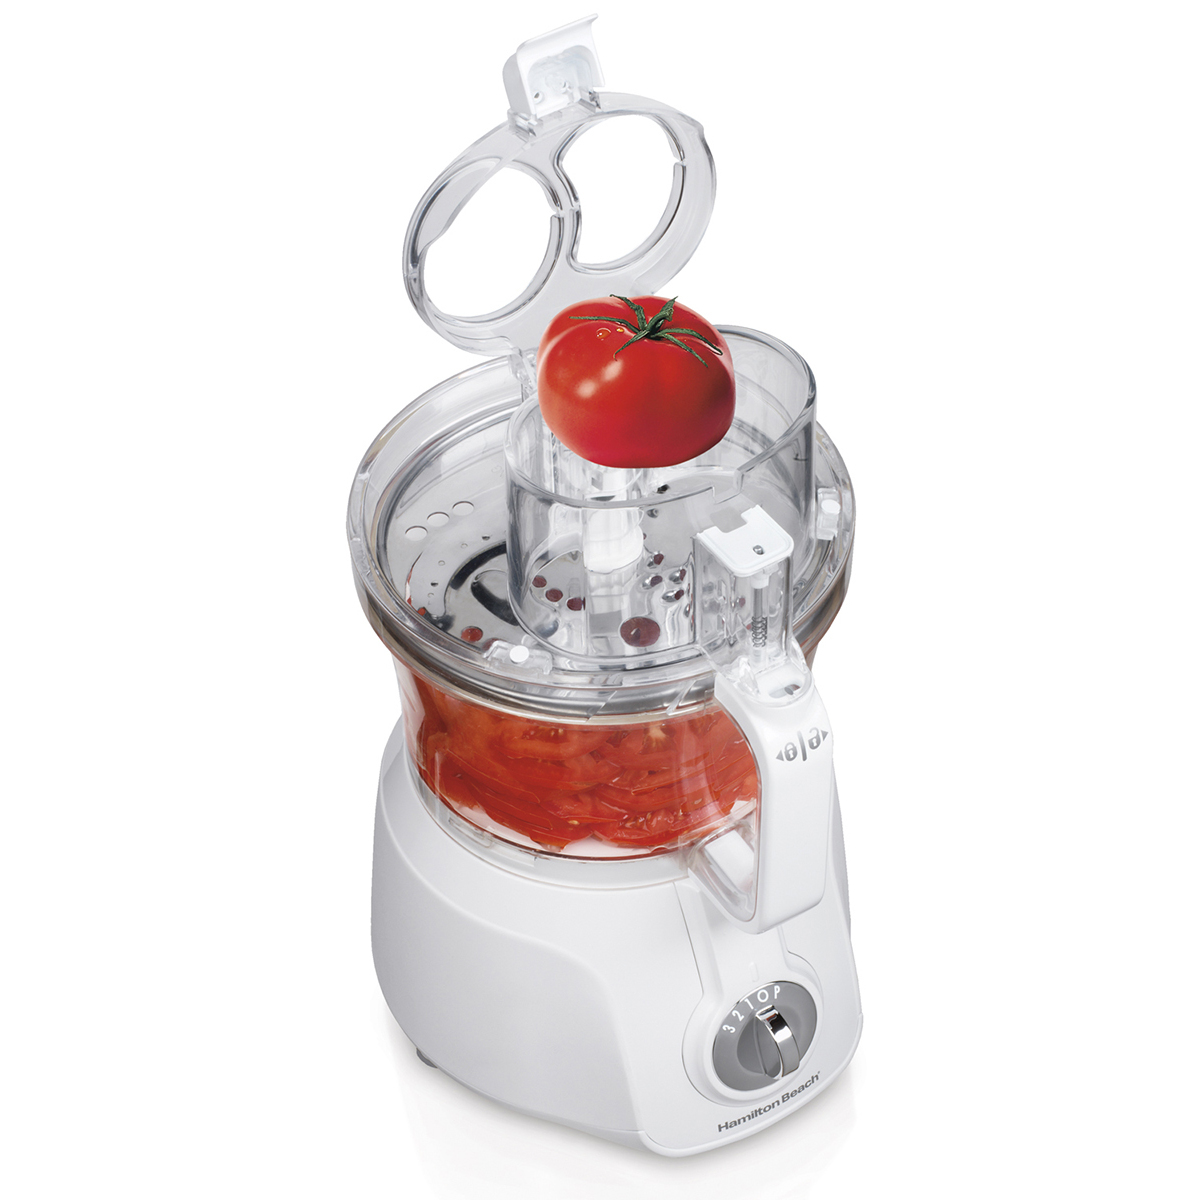 Big Mouth® 14 Cup Food Processor (70570)